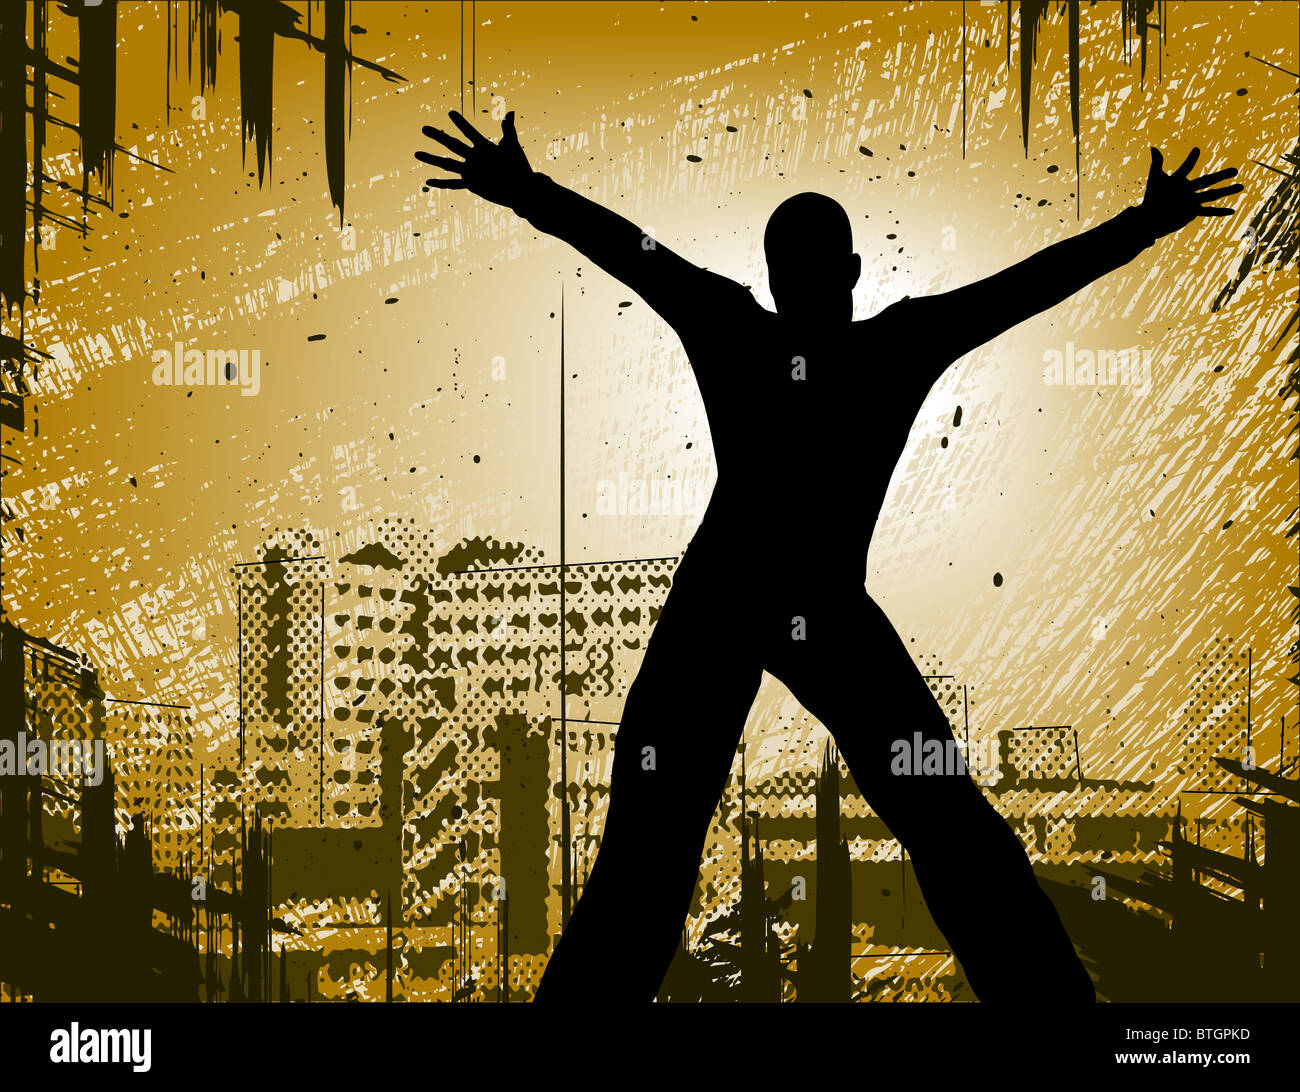 Illustrated design of a man in a city with grunge - Stock Image